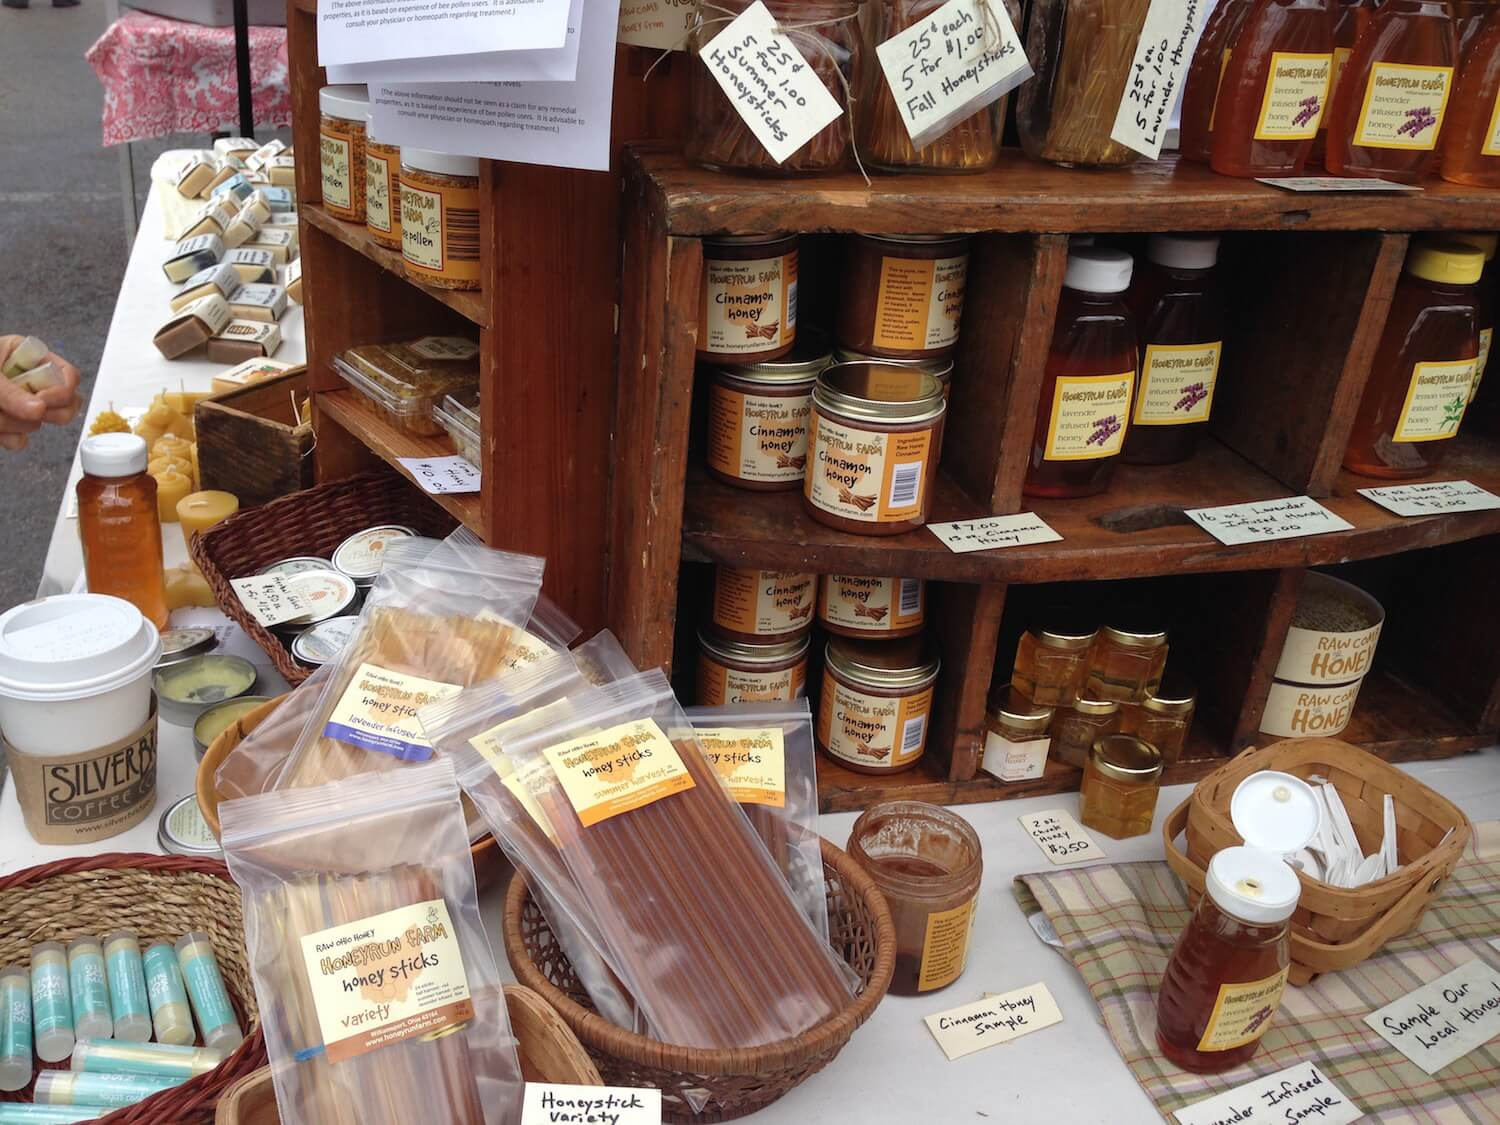 The Honey Table